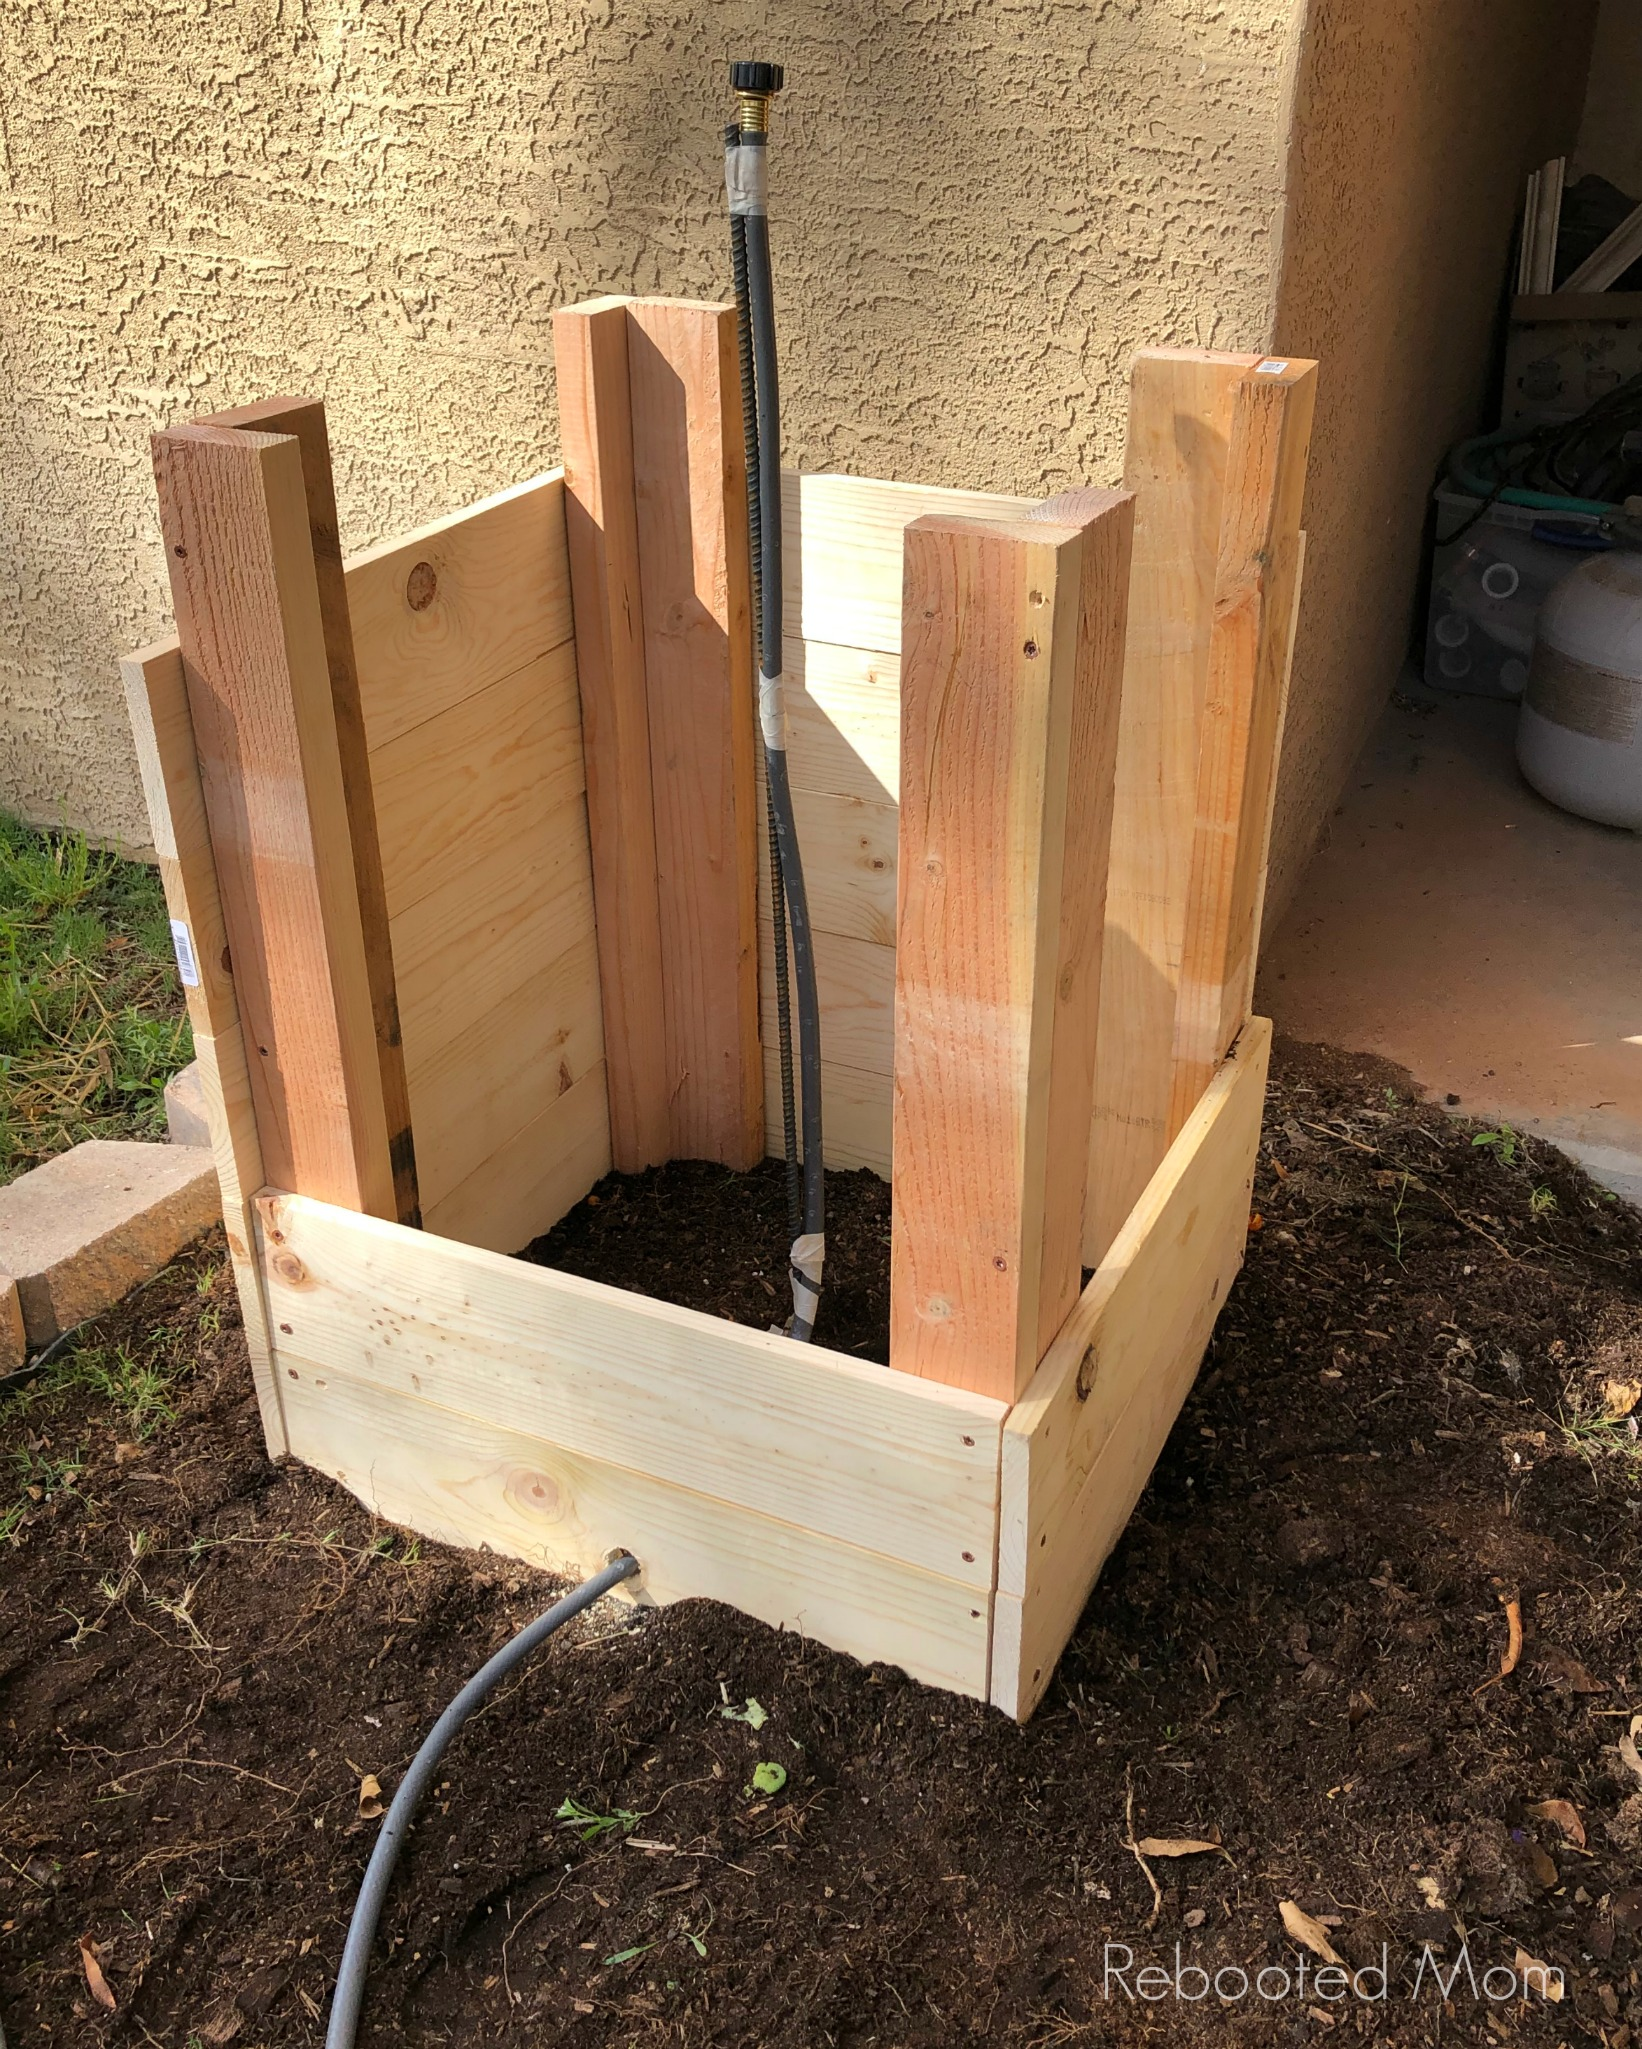 DIY - Build a Potato Grow Box